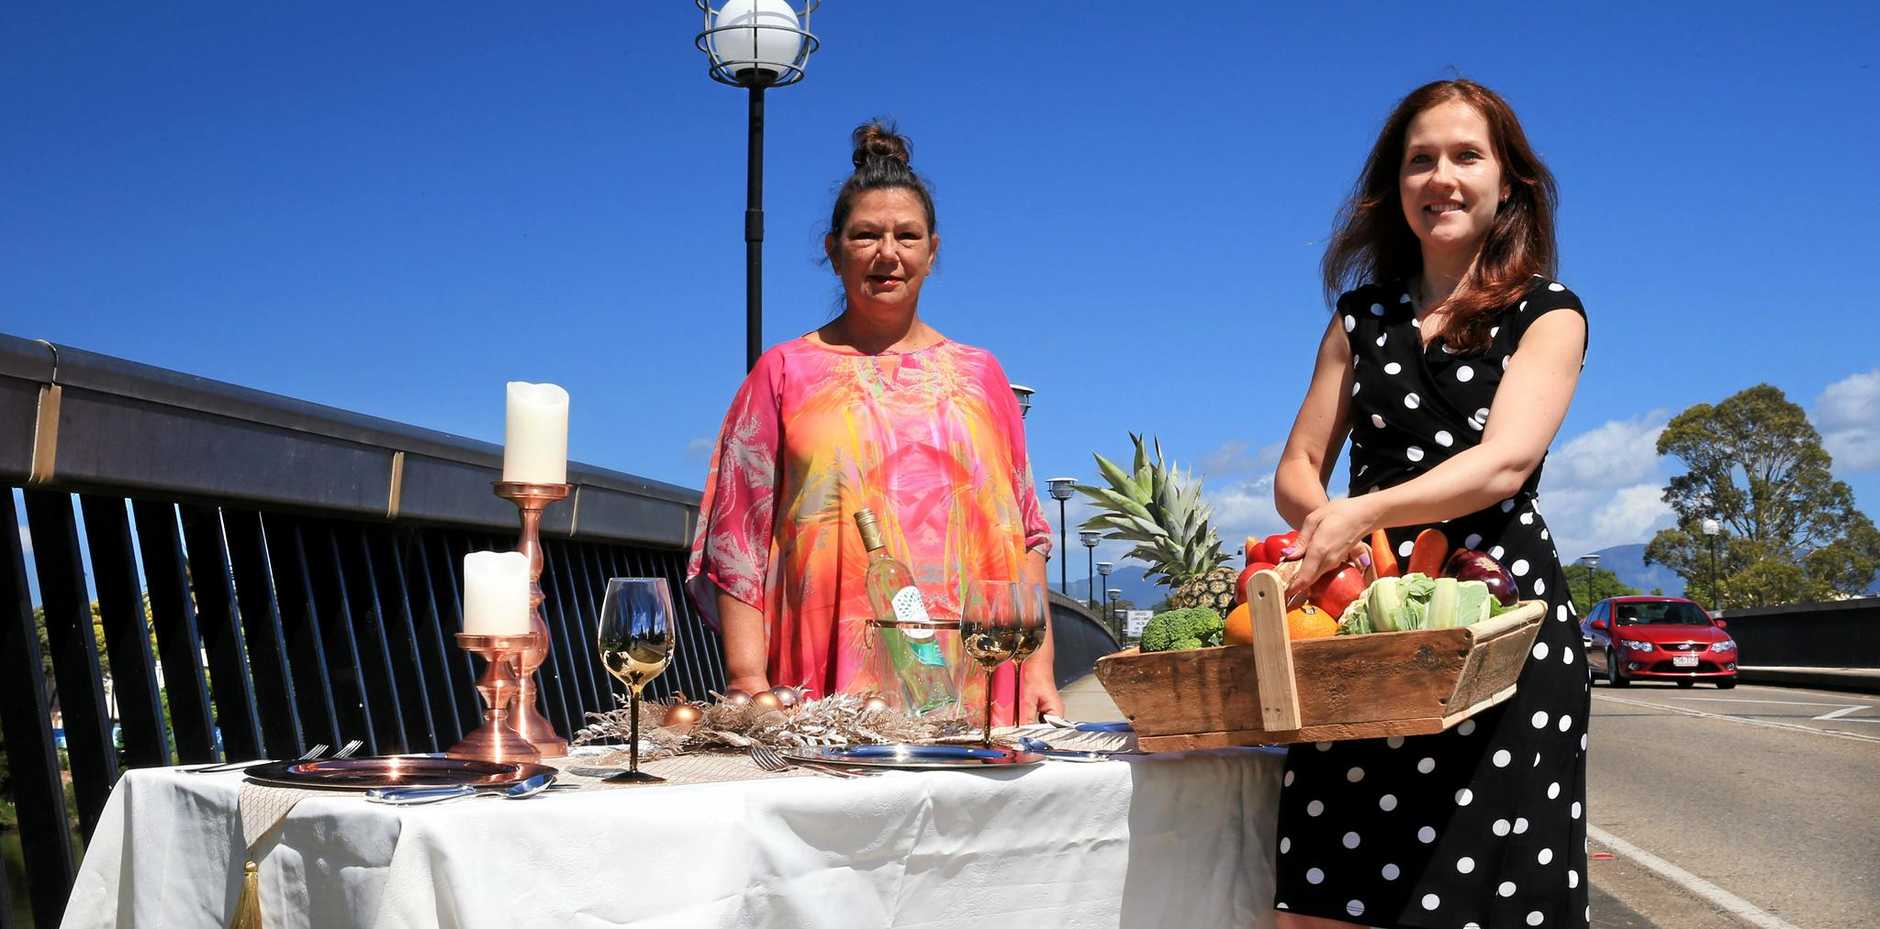 GOOD TIMES: Kerry Turner and Katya Simmons get into the swing of things setting up a table on the Murwillumbah Bridge ahead of the Tweed Foodie Fest on December 3.